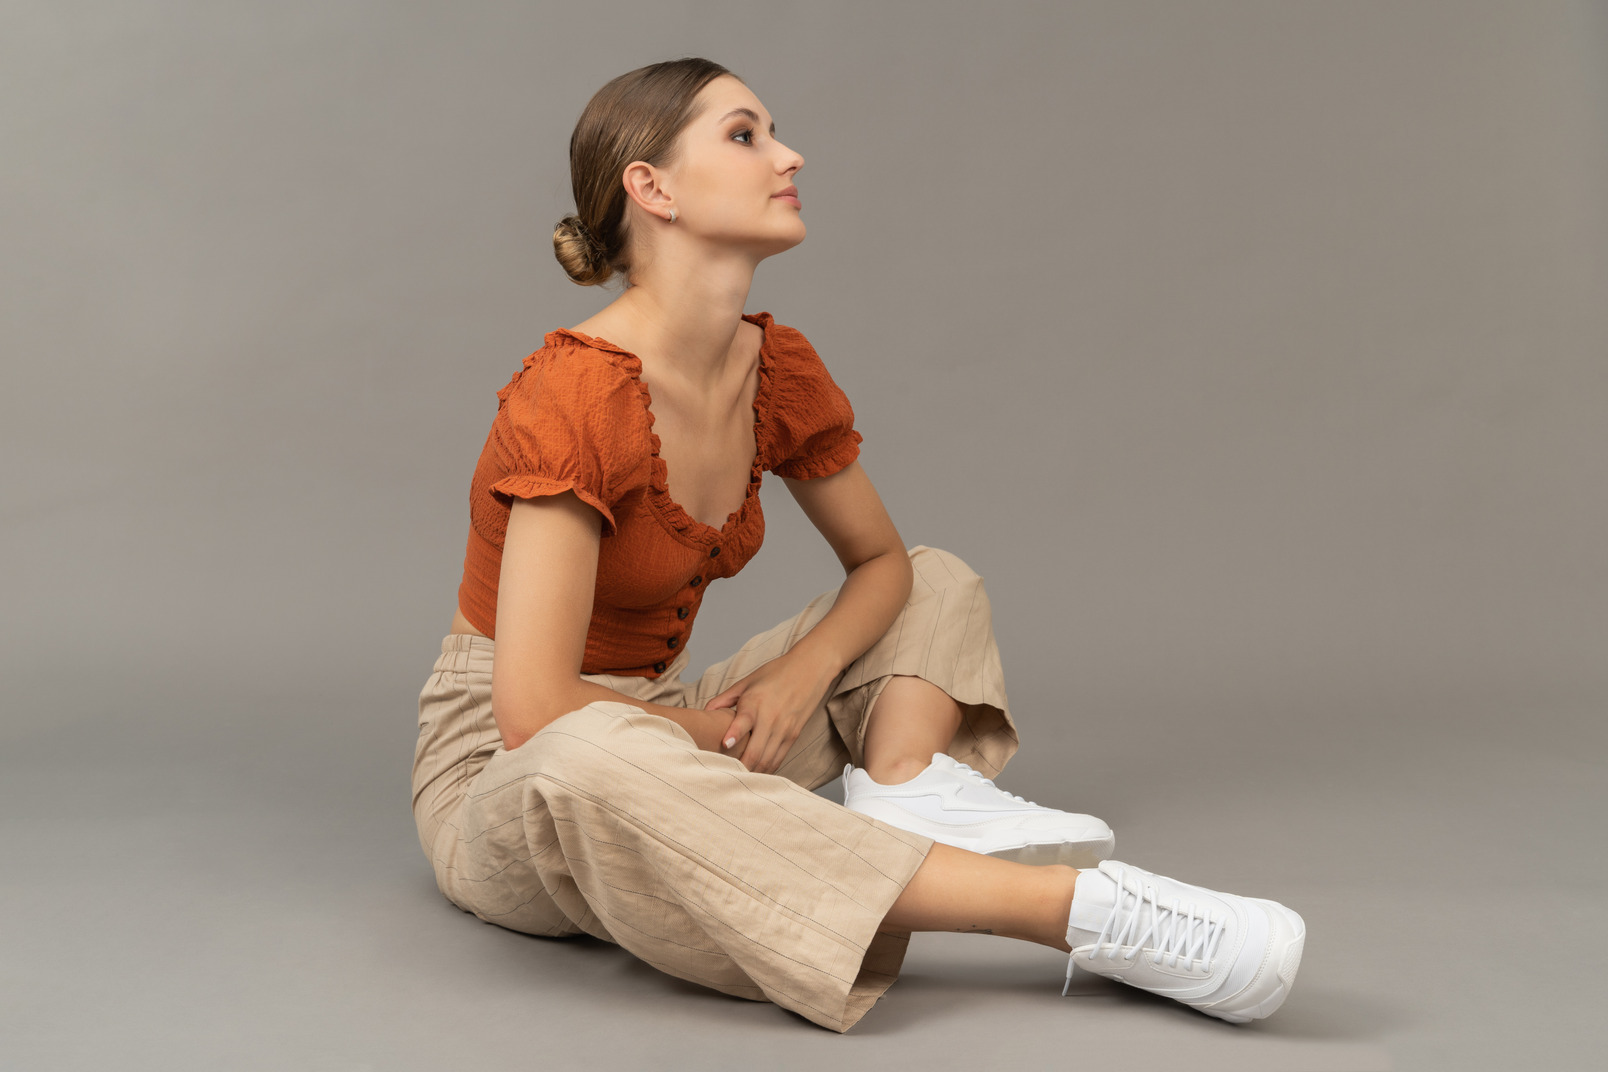 Young woman sits while looking away